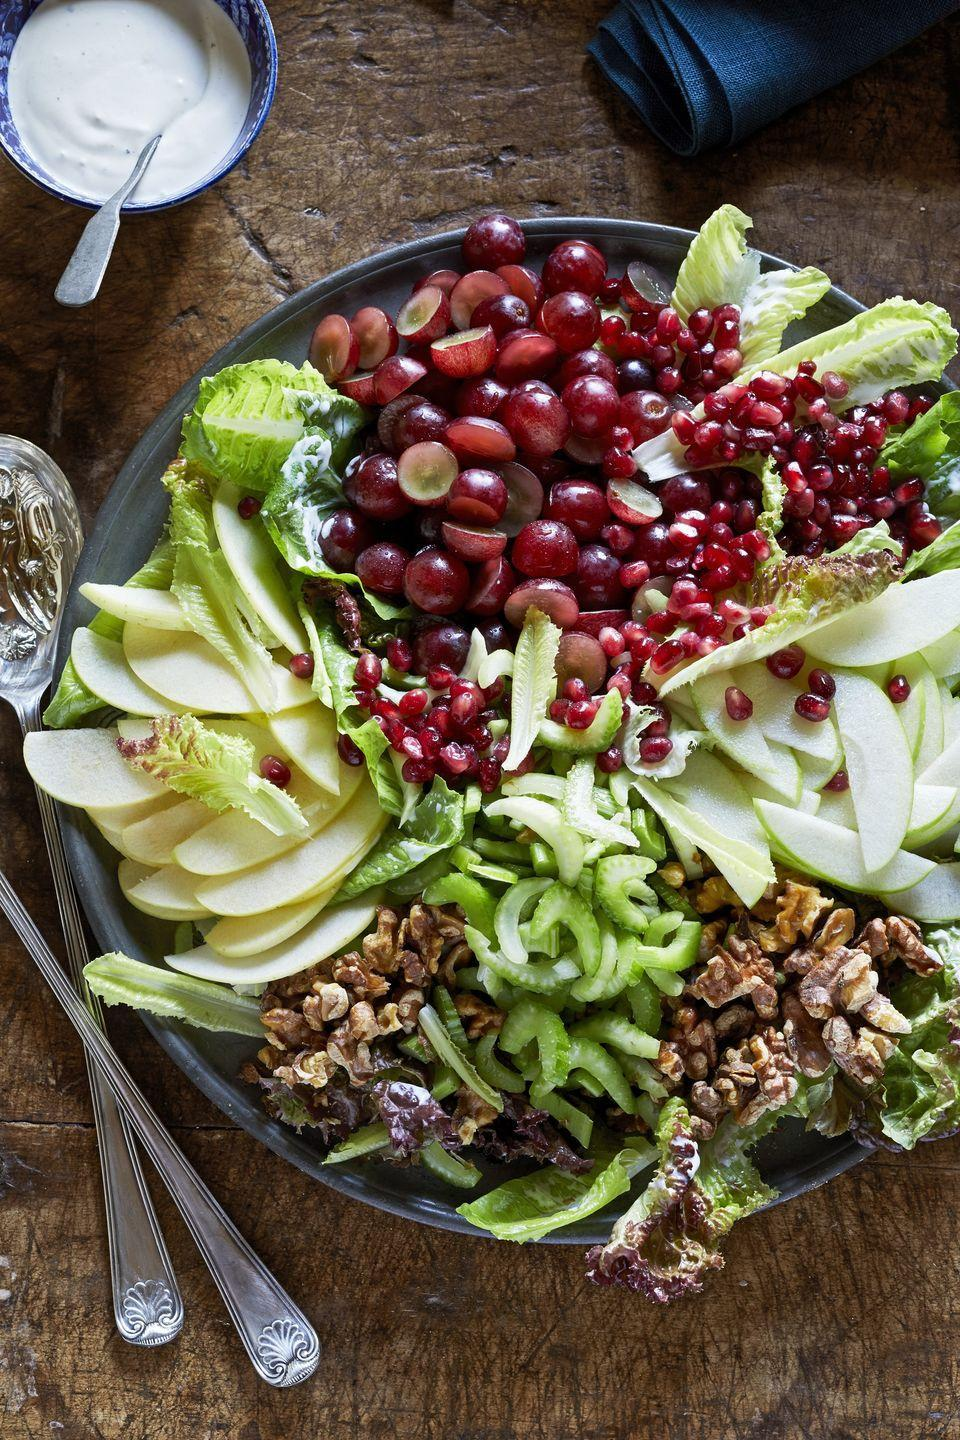 "<p>Believe it or not, you can satisfy picky eaters in a healthy way—even on Thanksgiving! This Waldorf salad splits each ingredient into sections so guests can pick and choose what they like.</p><p><strong><a href=""https://www.countryliving.com/food-drinks/a29131841/composed-waldorf-salad/"" rel=""nofollow noopener"" target=""_blank"" data-ylk=""slk:Get the recipe"" class=""link rapid-noclick-resp"">Get the recipe</a>.</strong></p><p><strong><strong><a class=""link rapid-noclick-resp"" href=""https://www.amazon.com/Lipper-International-Salad-Hands-Brown/dp/B00FSBE82M/?tag=syn-yahoo-20&ascsubtag=%5Bartid%7C10050.g.1395%5Bsrc%7Cyahoo-us"" rel=""nofollow noopener"" target=""_blank"" data-ylk=""slk:SHOP SALAD BOWLS"">SHOP SALAD BOWLS</a></strong><br></strong></p>"